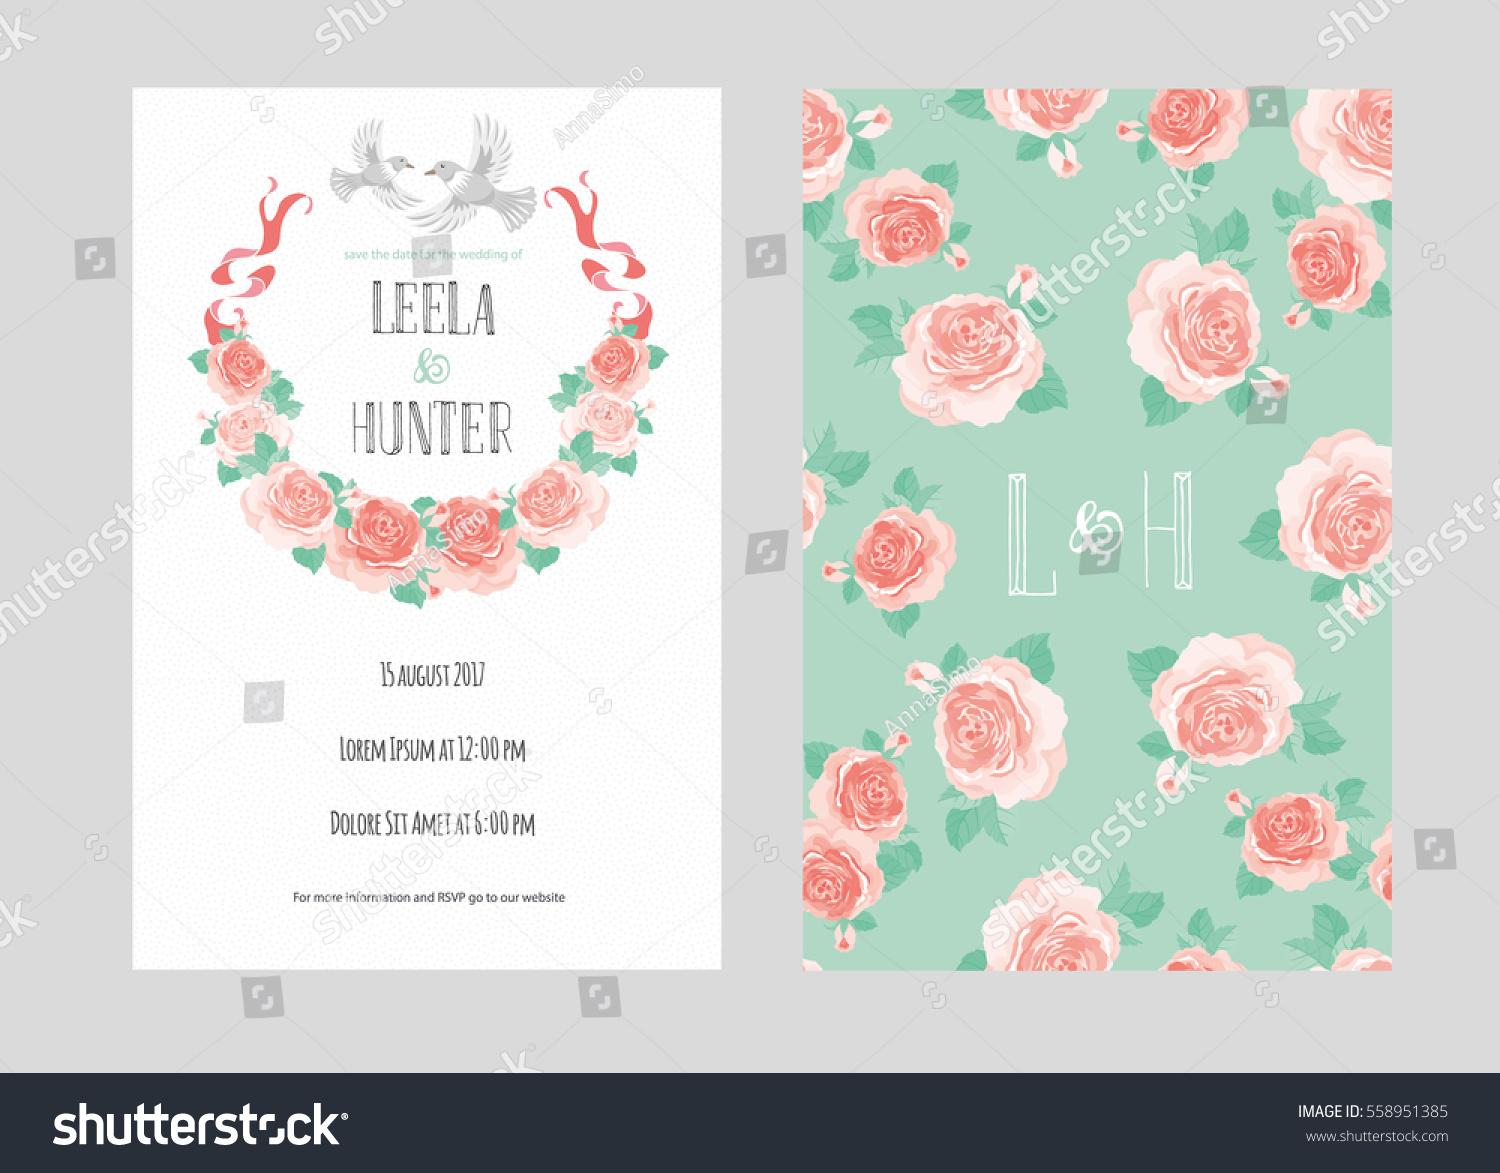 Template Wedding Invitation Card Doves Blooming Stock Photo (Photo ...